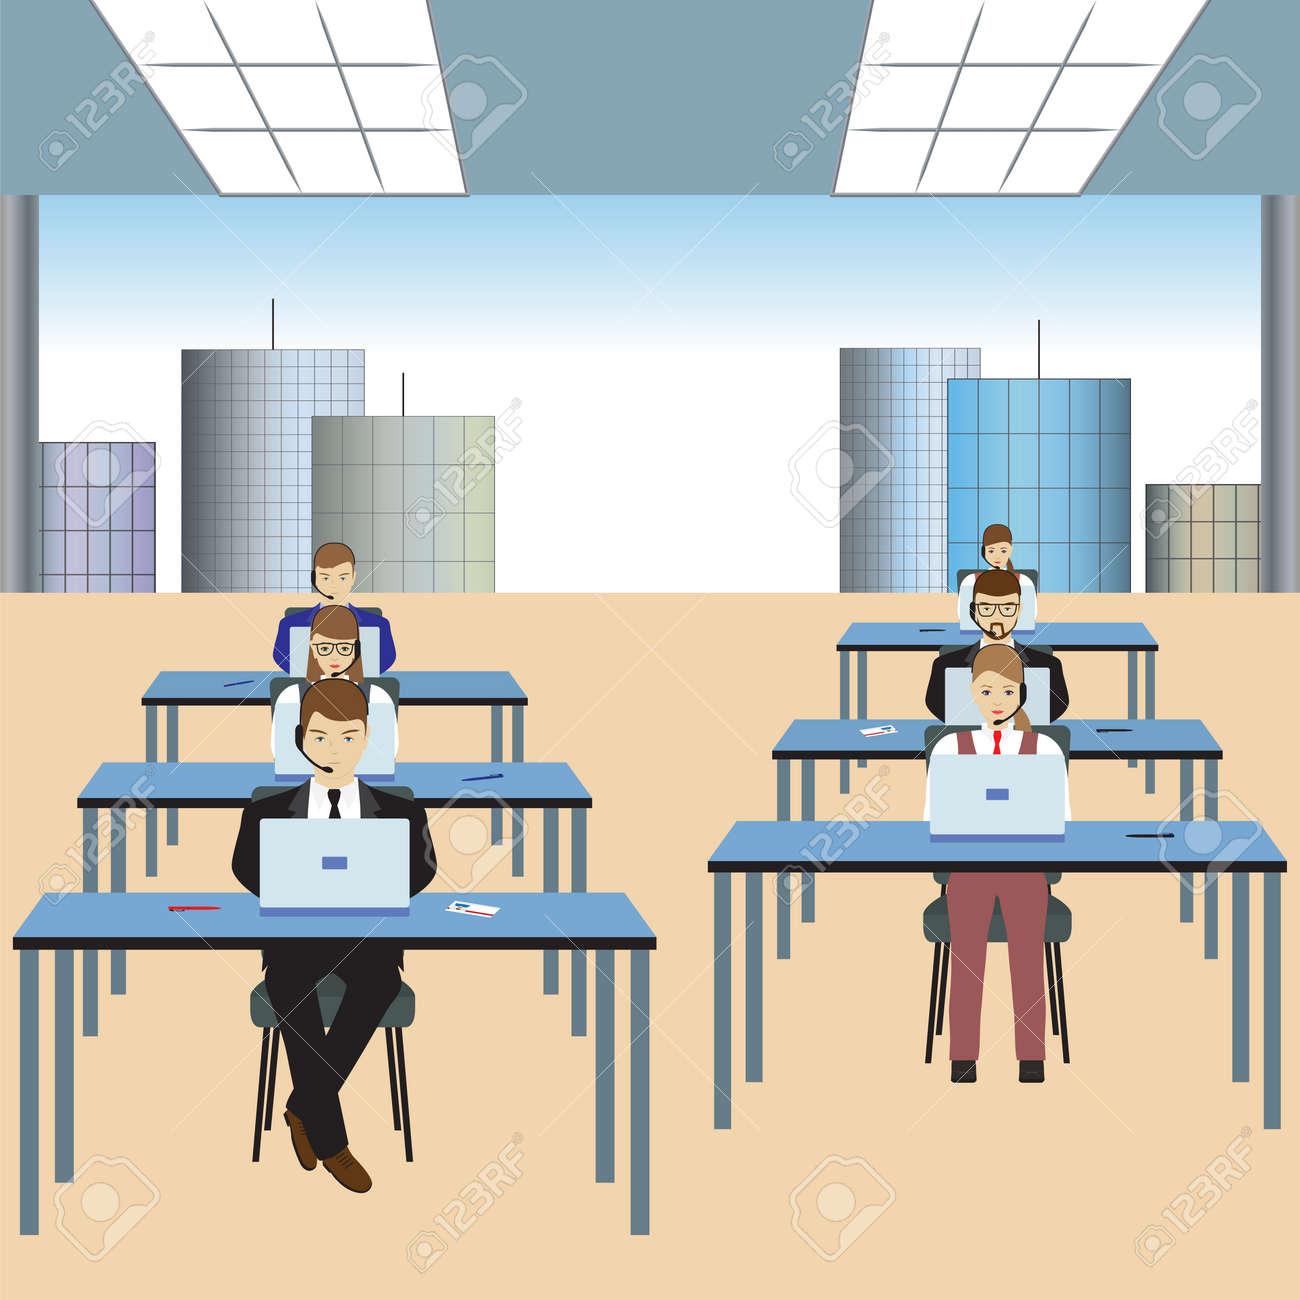 People working in a call center. Office. Support service. Call center. - 52407232